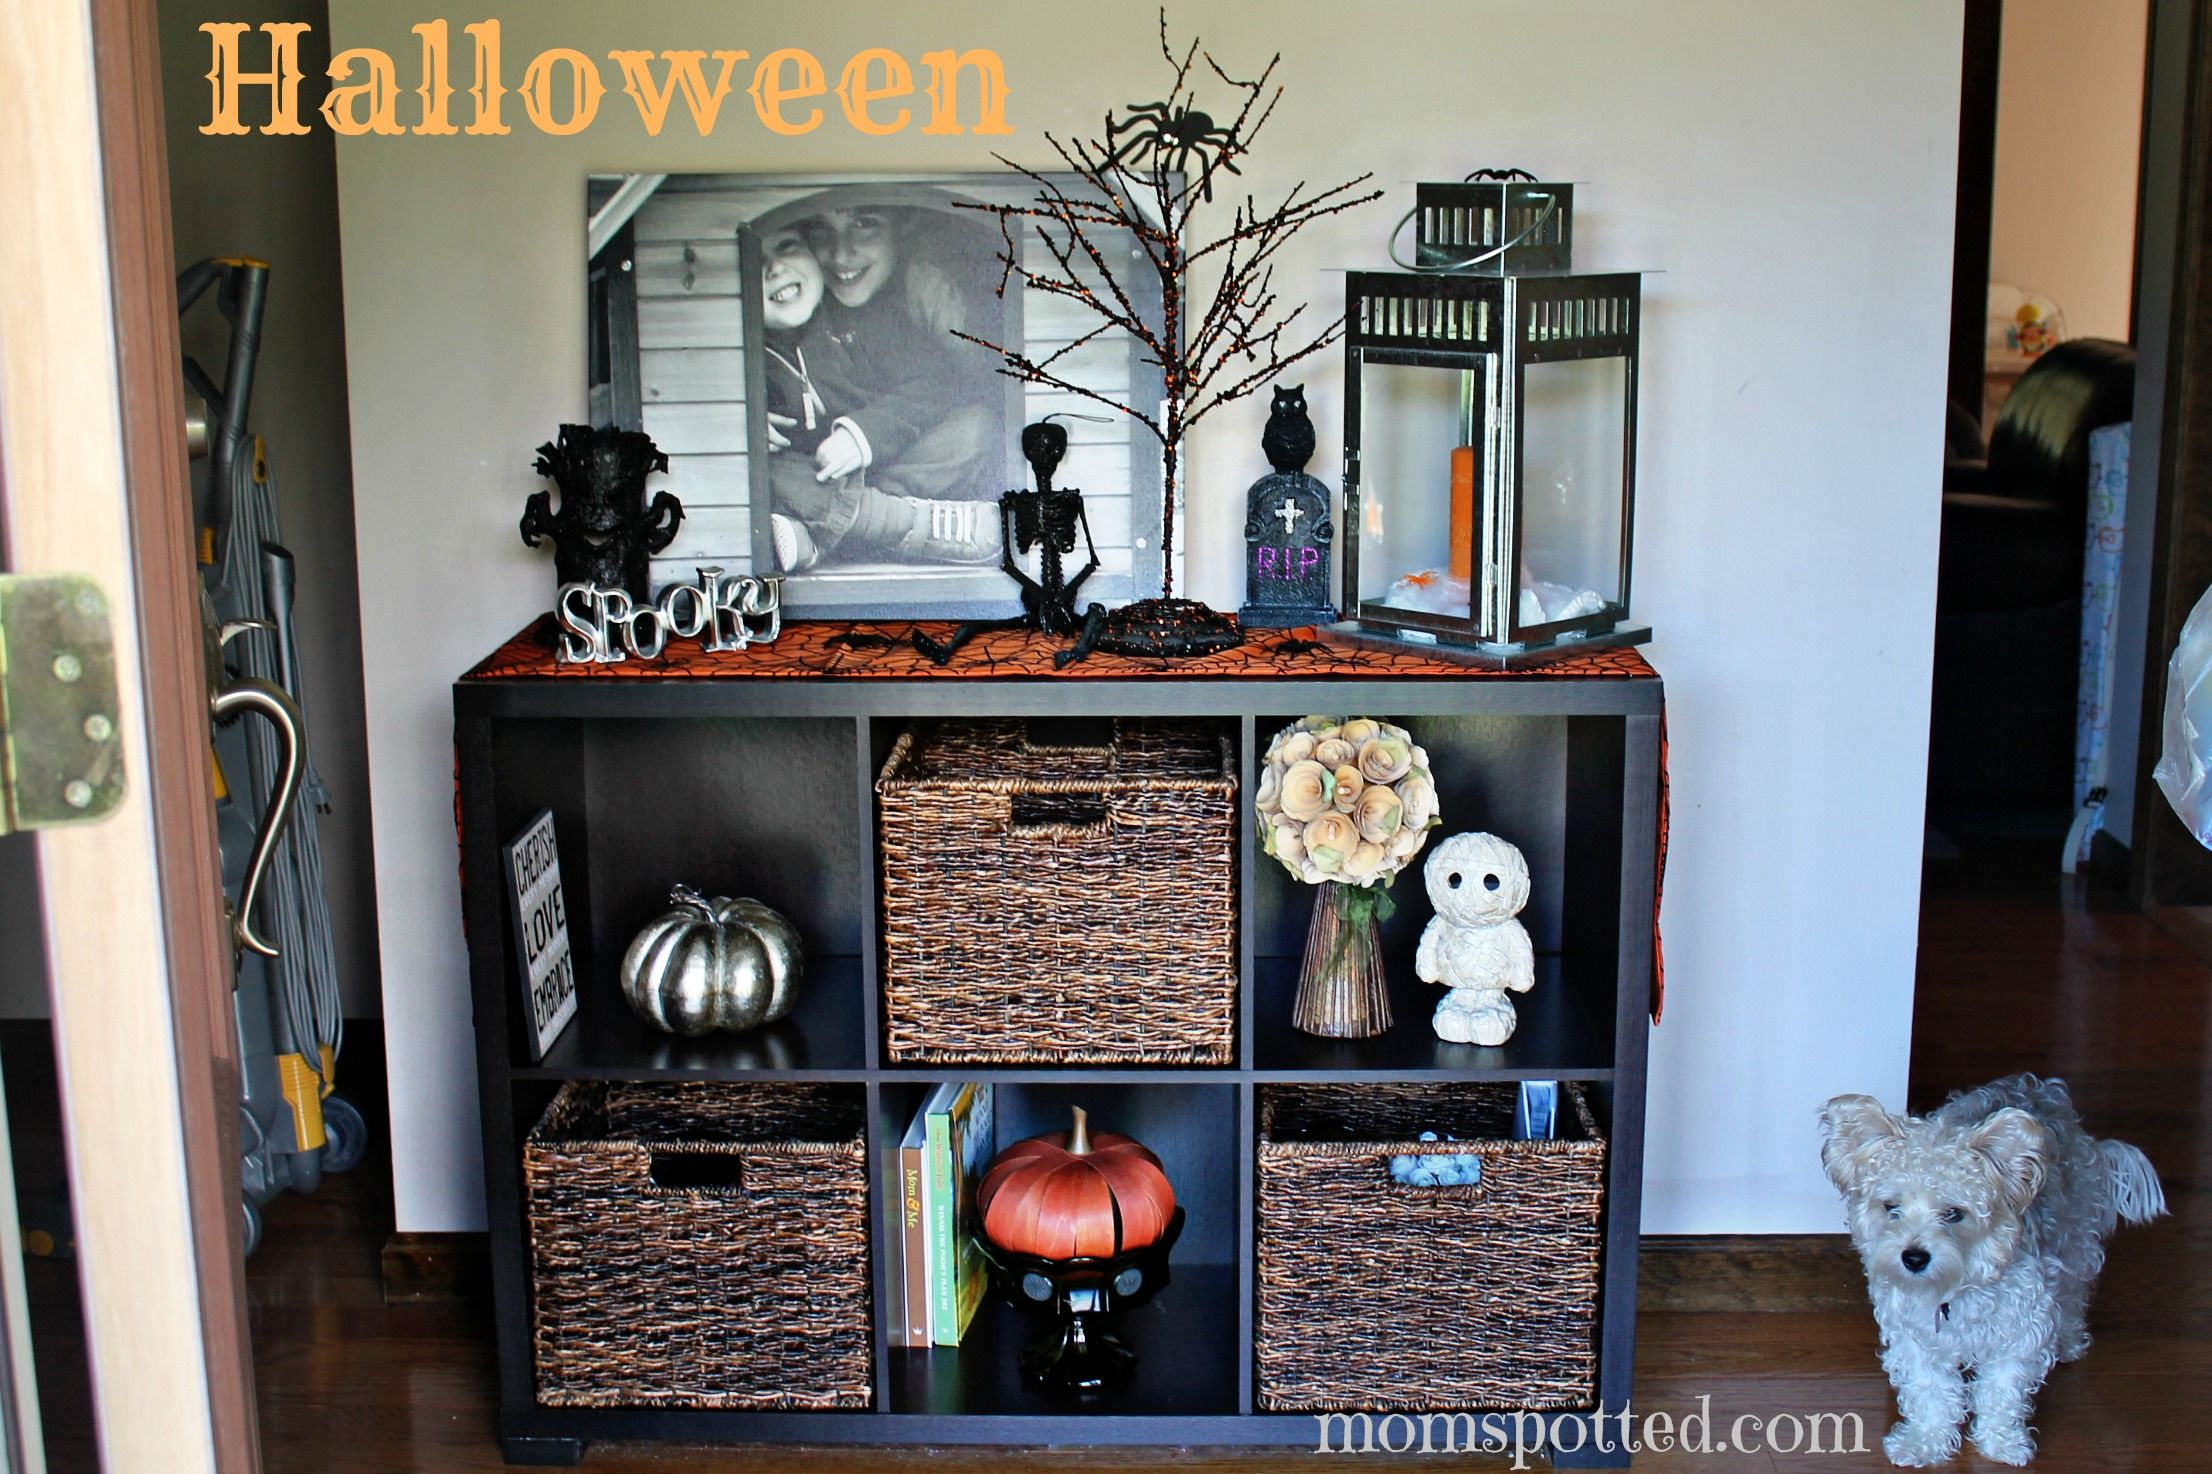 Pin by Kim McGowan on Halloween Pinterest Autumn - Decorating For Halloween